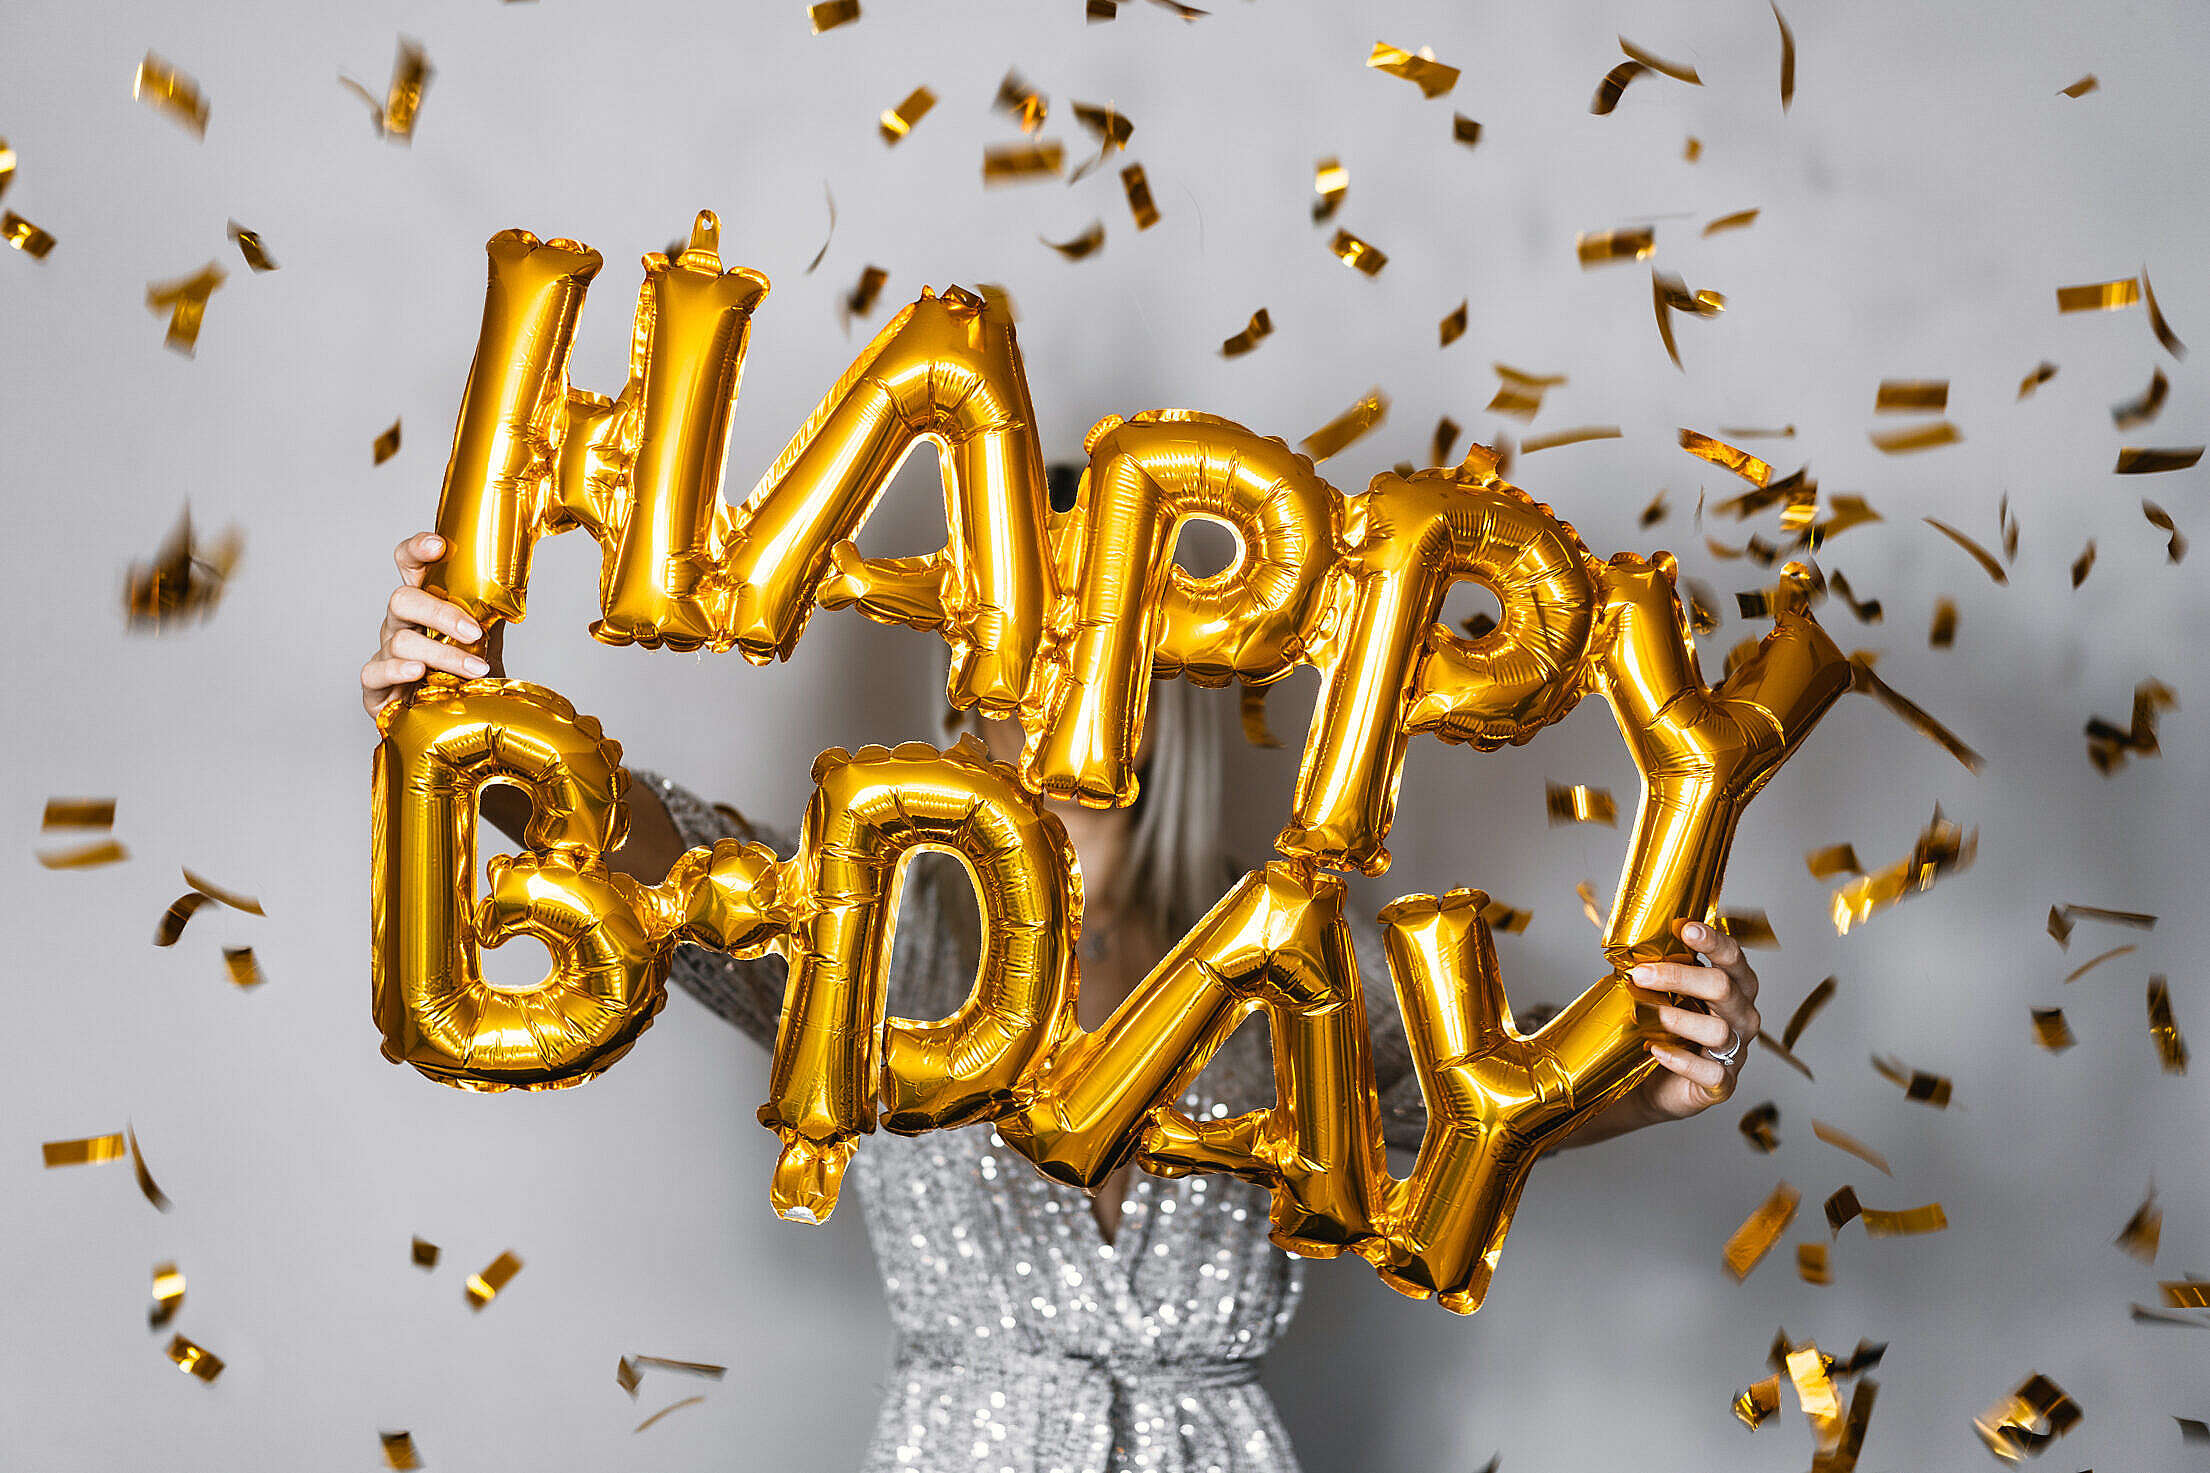 Happy Birthday Inflatable Balloons with Gold Confetti Free Stock Photo